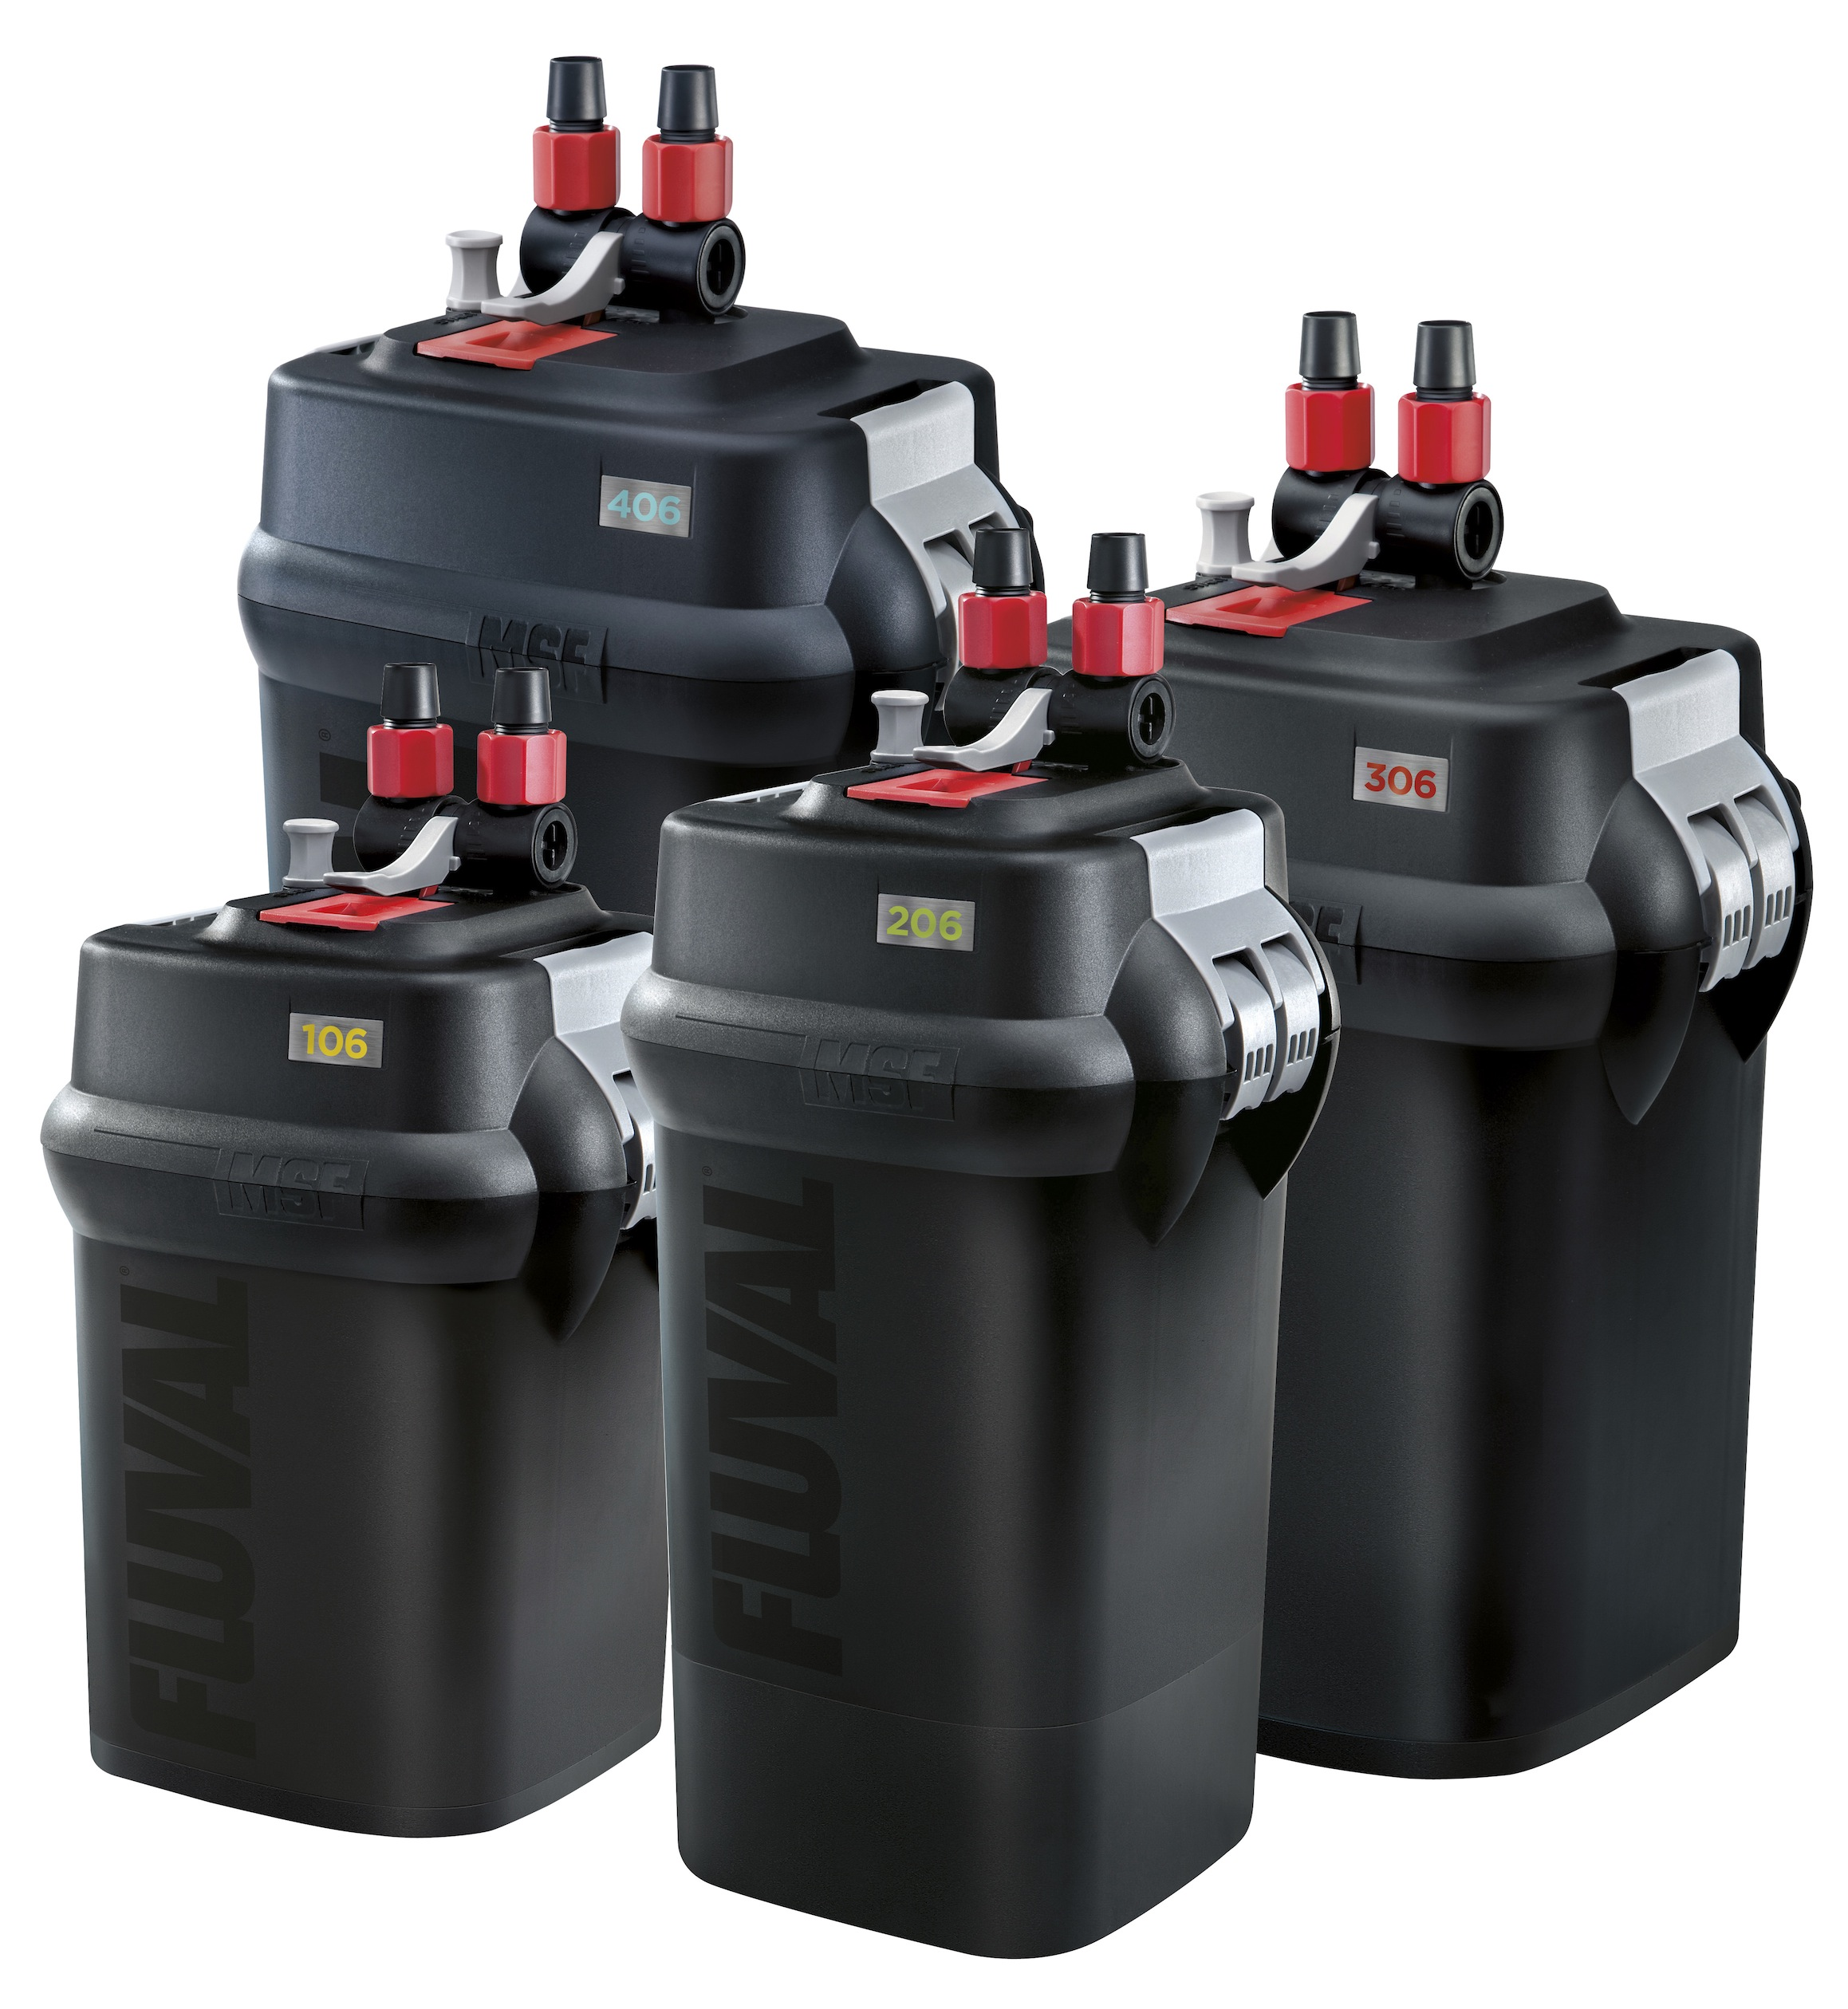 Fluval New '06 Canister Filters